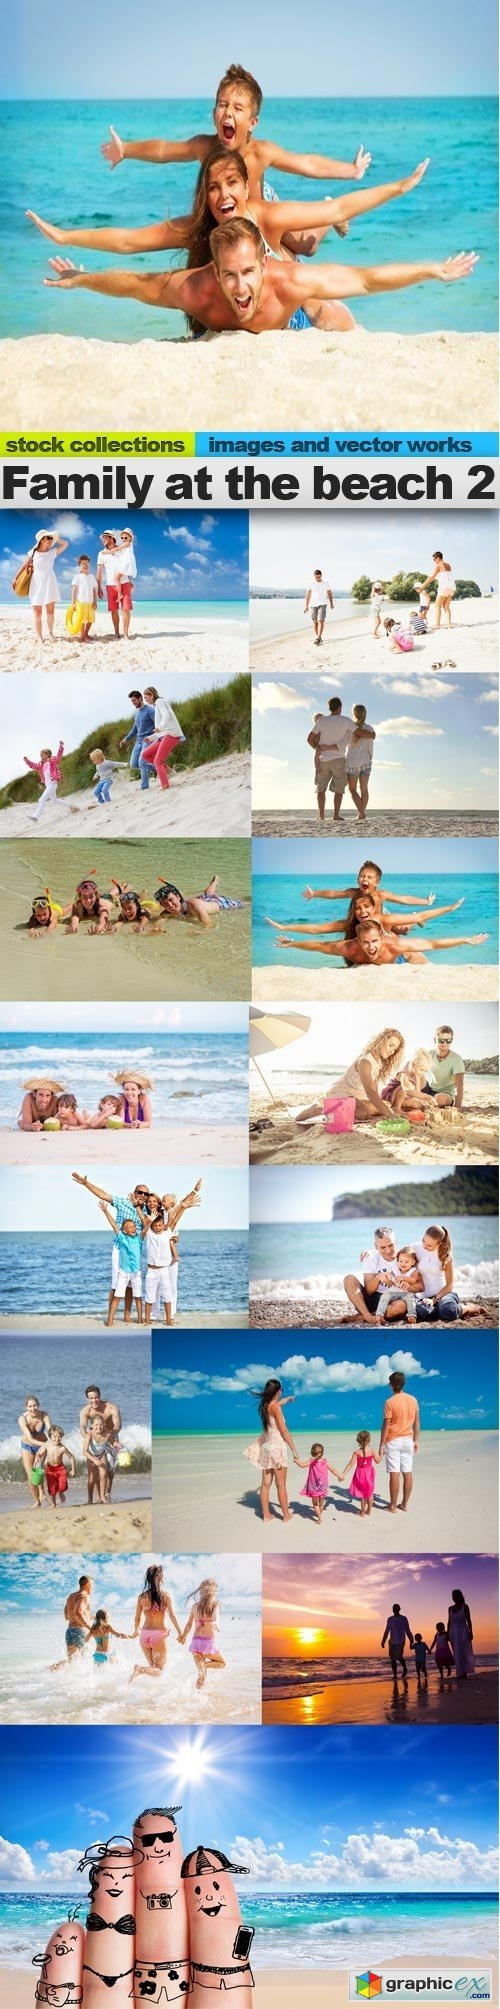 Family at the beach 2, 15 x UHQ JPEG